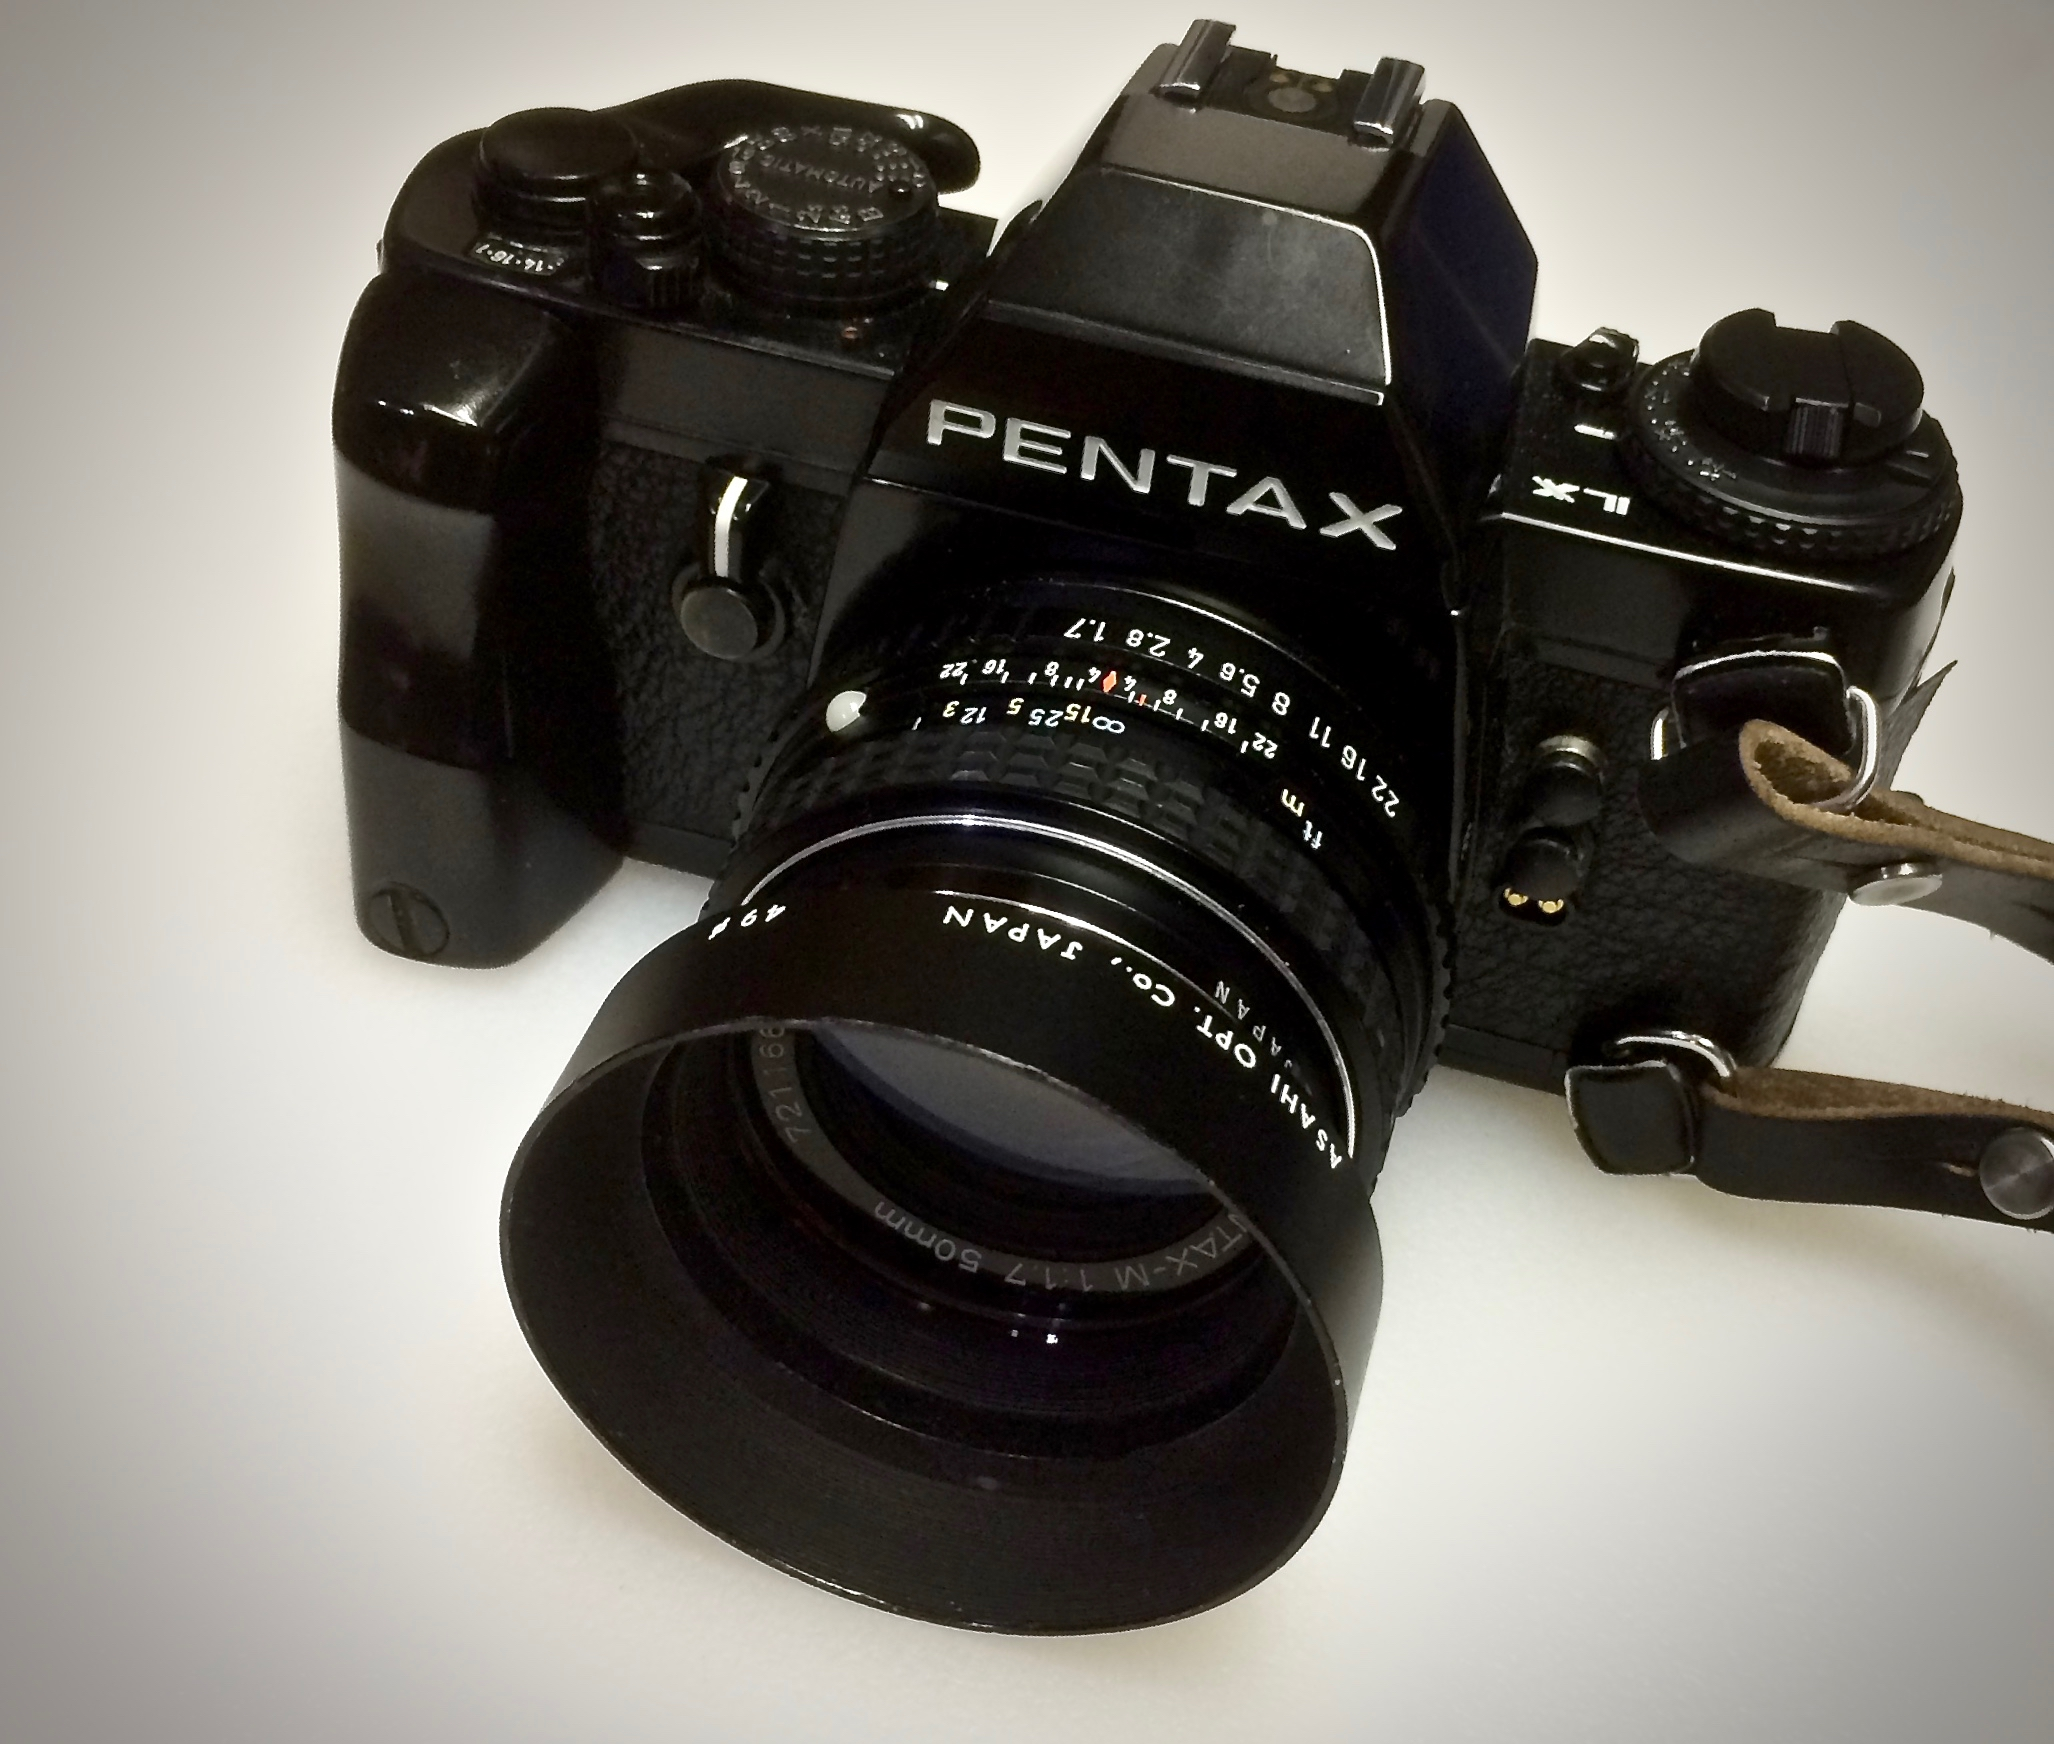 Pentax LX with the 50mm SMC f/1.7 lens